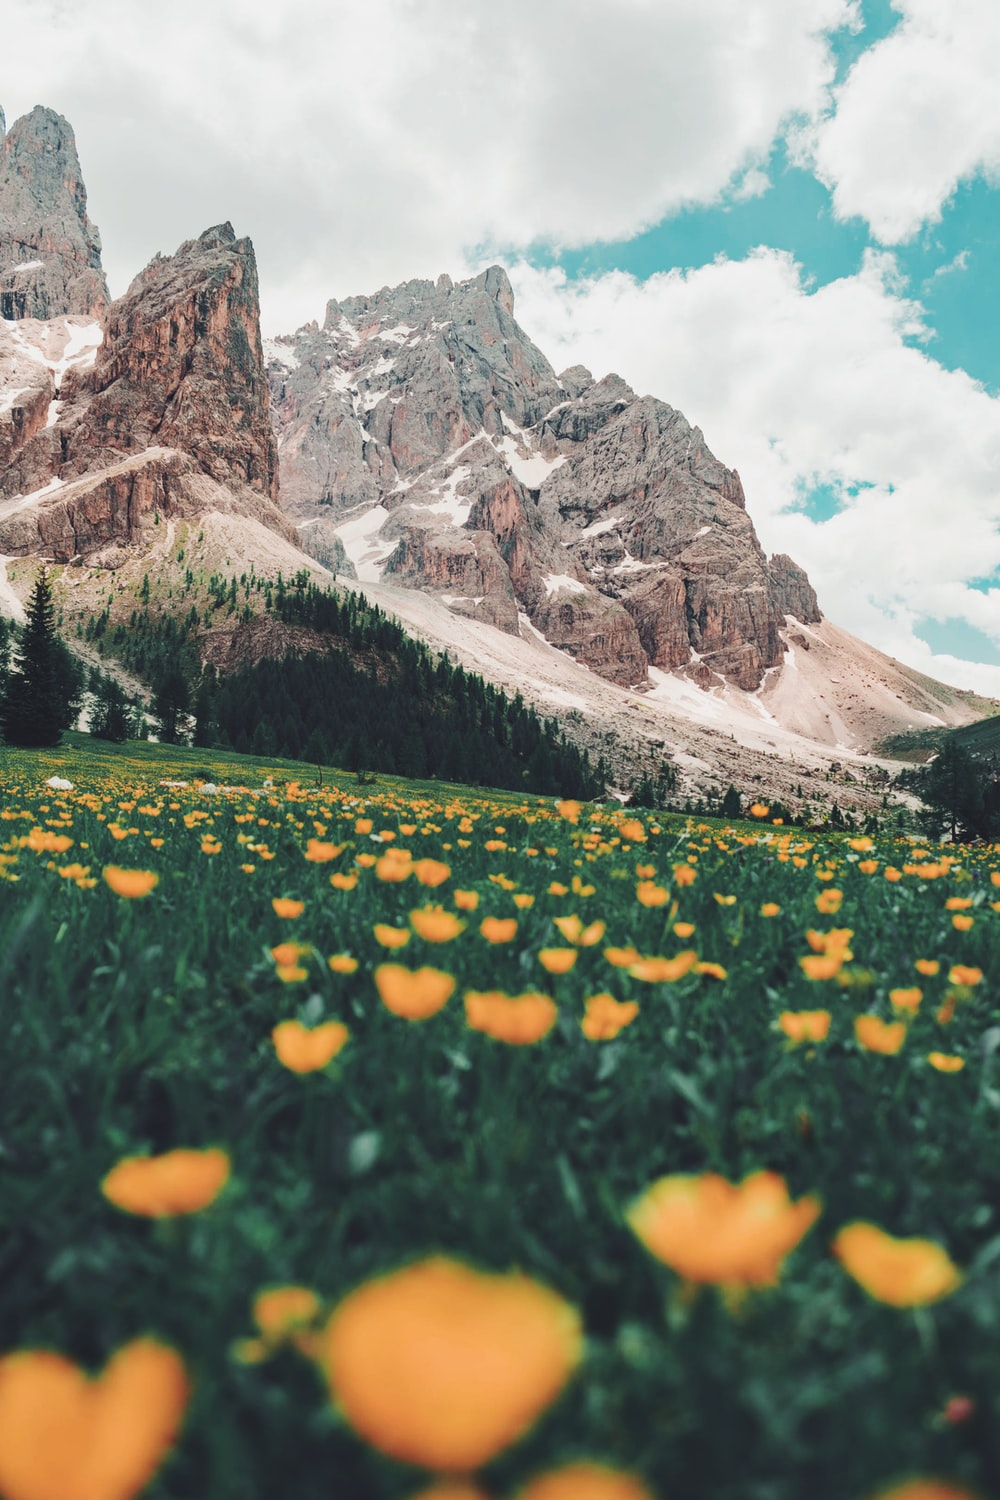 900 Nature Background Images Download Hd Backgrounds On Unsplash